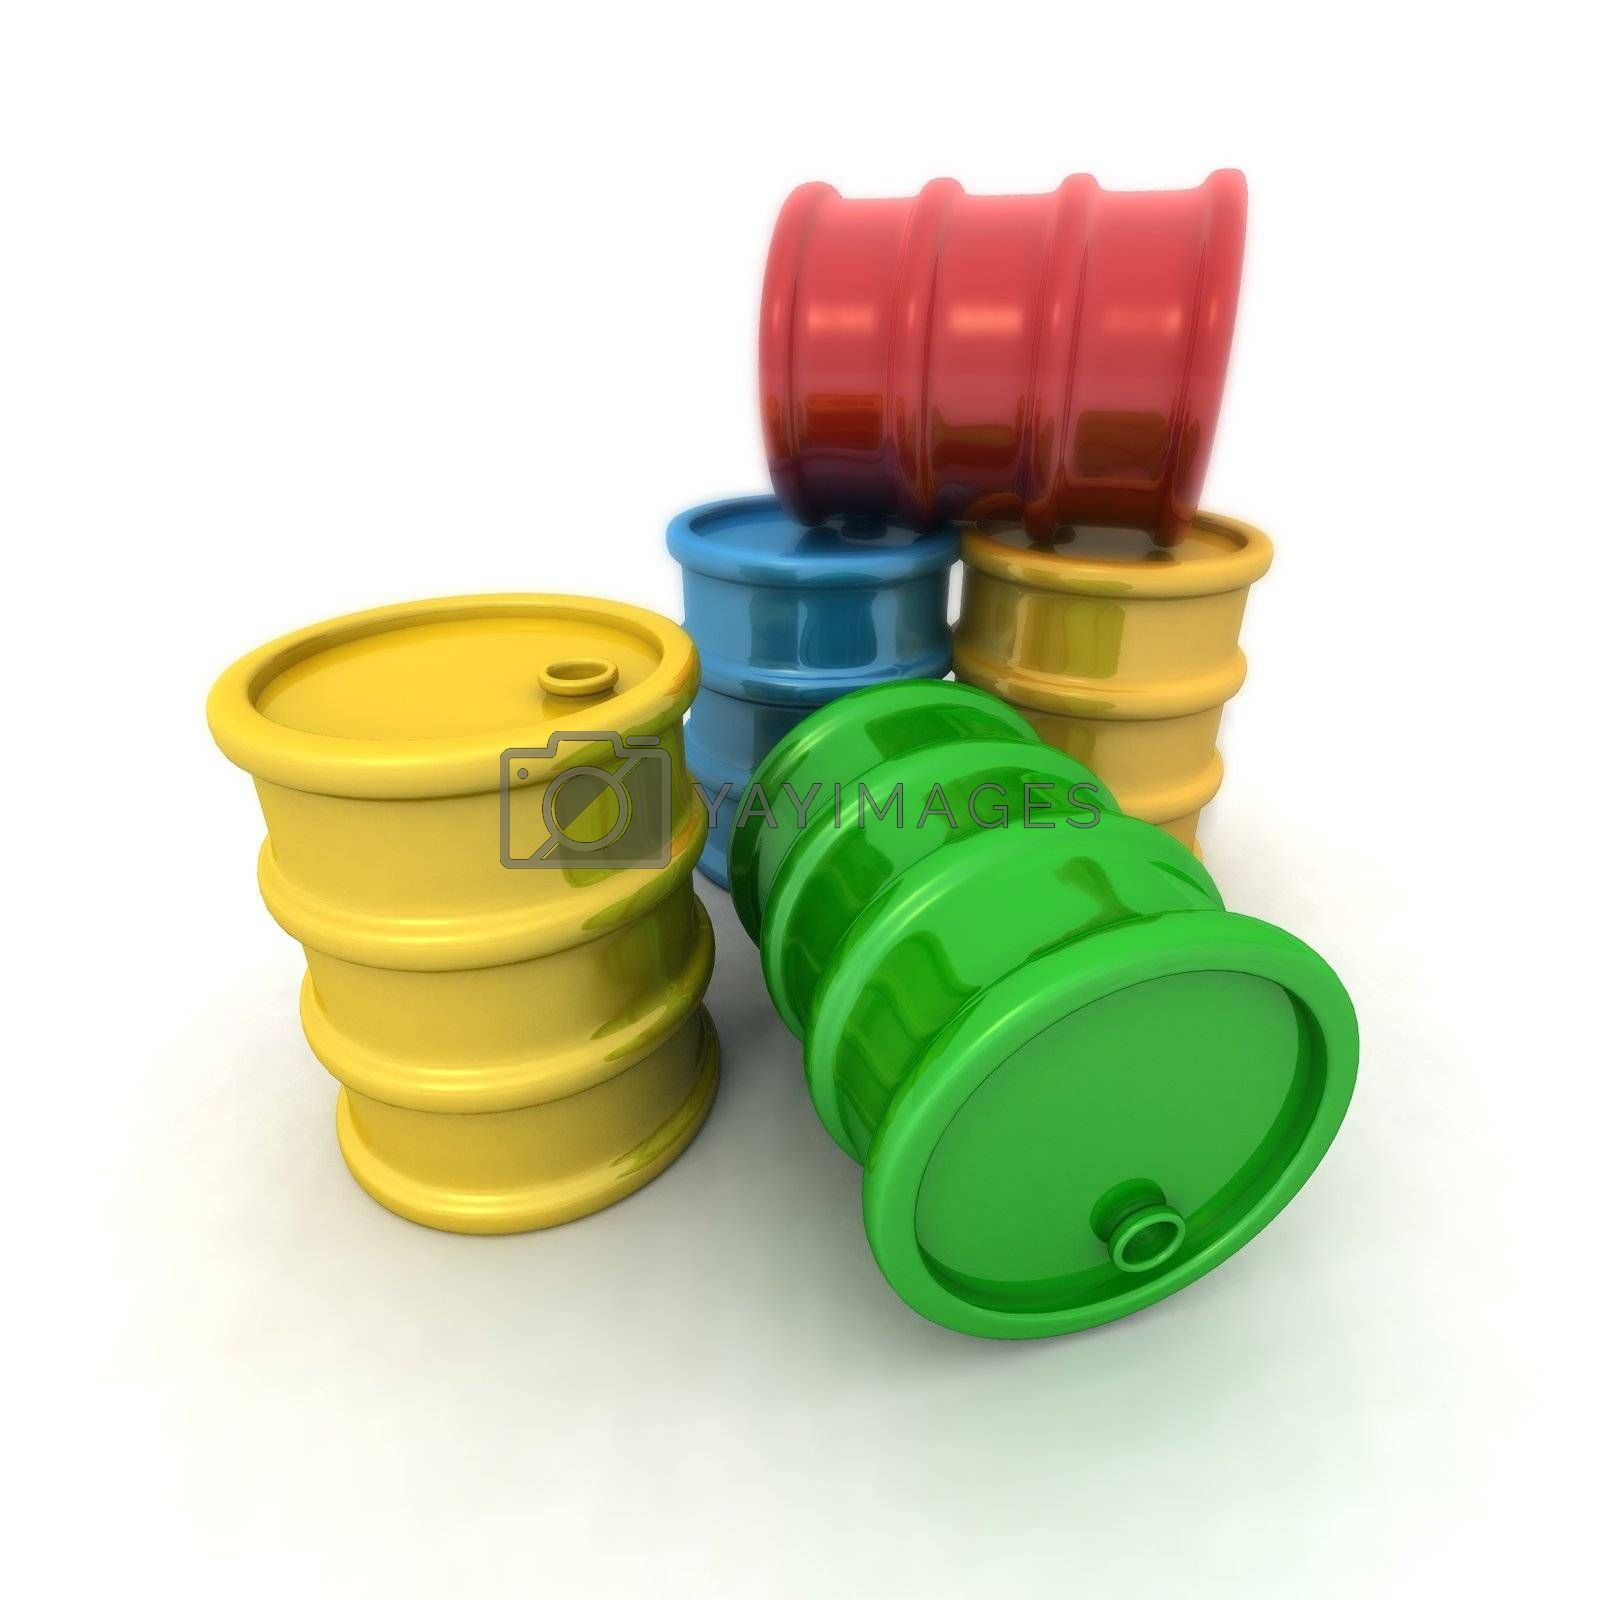 3D rendering of some colored barrels